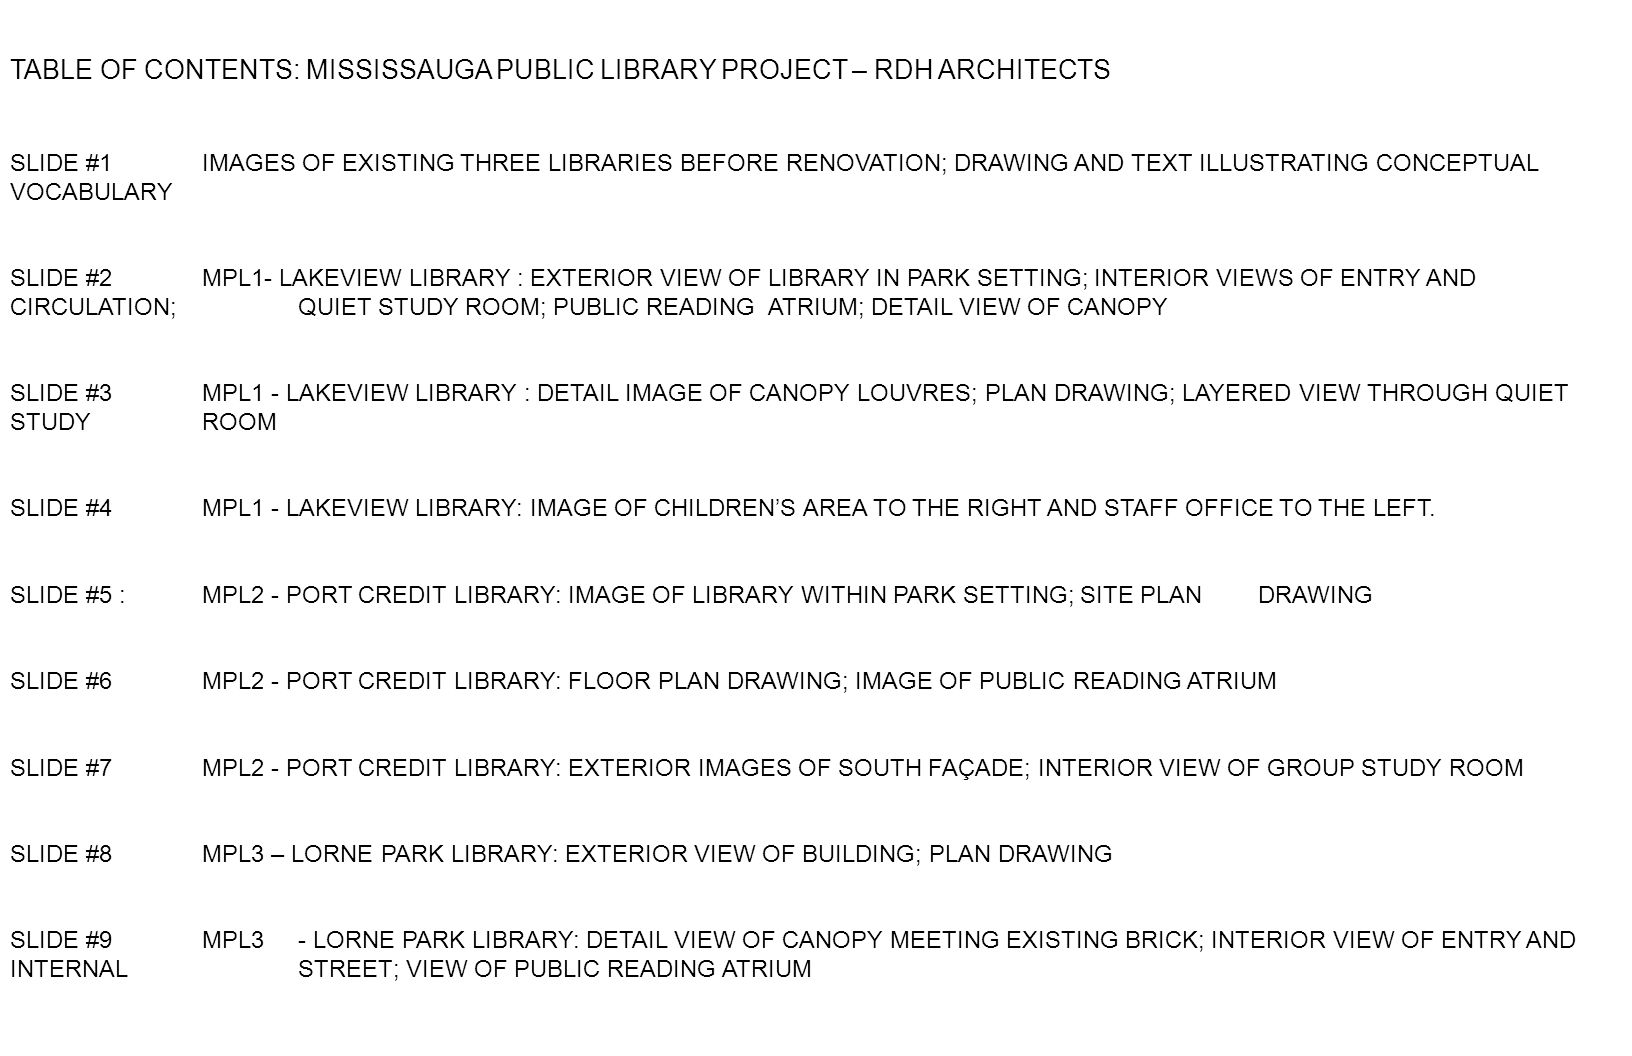 TABLE OF CONTENTS: MISSISSAUGA PUBLIC LIBRARY PROJECT – RDH ARCHITECTS SLIDE #1 IMAGES OF EXISTING THREE LIBRARIES BEFORE RENOVATION; DRAWING AND TEXT ILLUSTRATING CONCEPTUAL VOCABULARY SLIDE #2 MPL1- LAKEVIEW LIBRARY : EXTERIOR VIEW OF LIBRARY IN PARK SETTING; INTERIOR VIEWS OF ENTRY AND CIRCULATION; QUIET STUDY ROOM; PUBLIC READING ATRIUM; DETAIL VIEW OF CANOPY SLIDE #3 MPL1 - LAKEVIEW LIBRARY : DETAIL IMAGE OF CANOPY LOUVRES; PLAN DRAWING; LAYERED VIEW THROUGH QUIET STUDY ROOM SLIDE #4 MPL1 - LAKEVIEW LIBRARY: IMAGE OF CHILDRENS AREA TO THE RIGHT AND STAFF OFFICE TO THE LEFT.